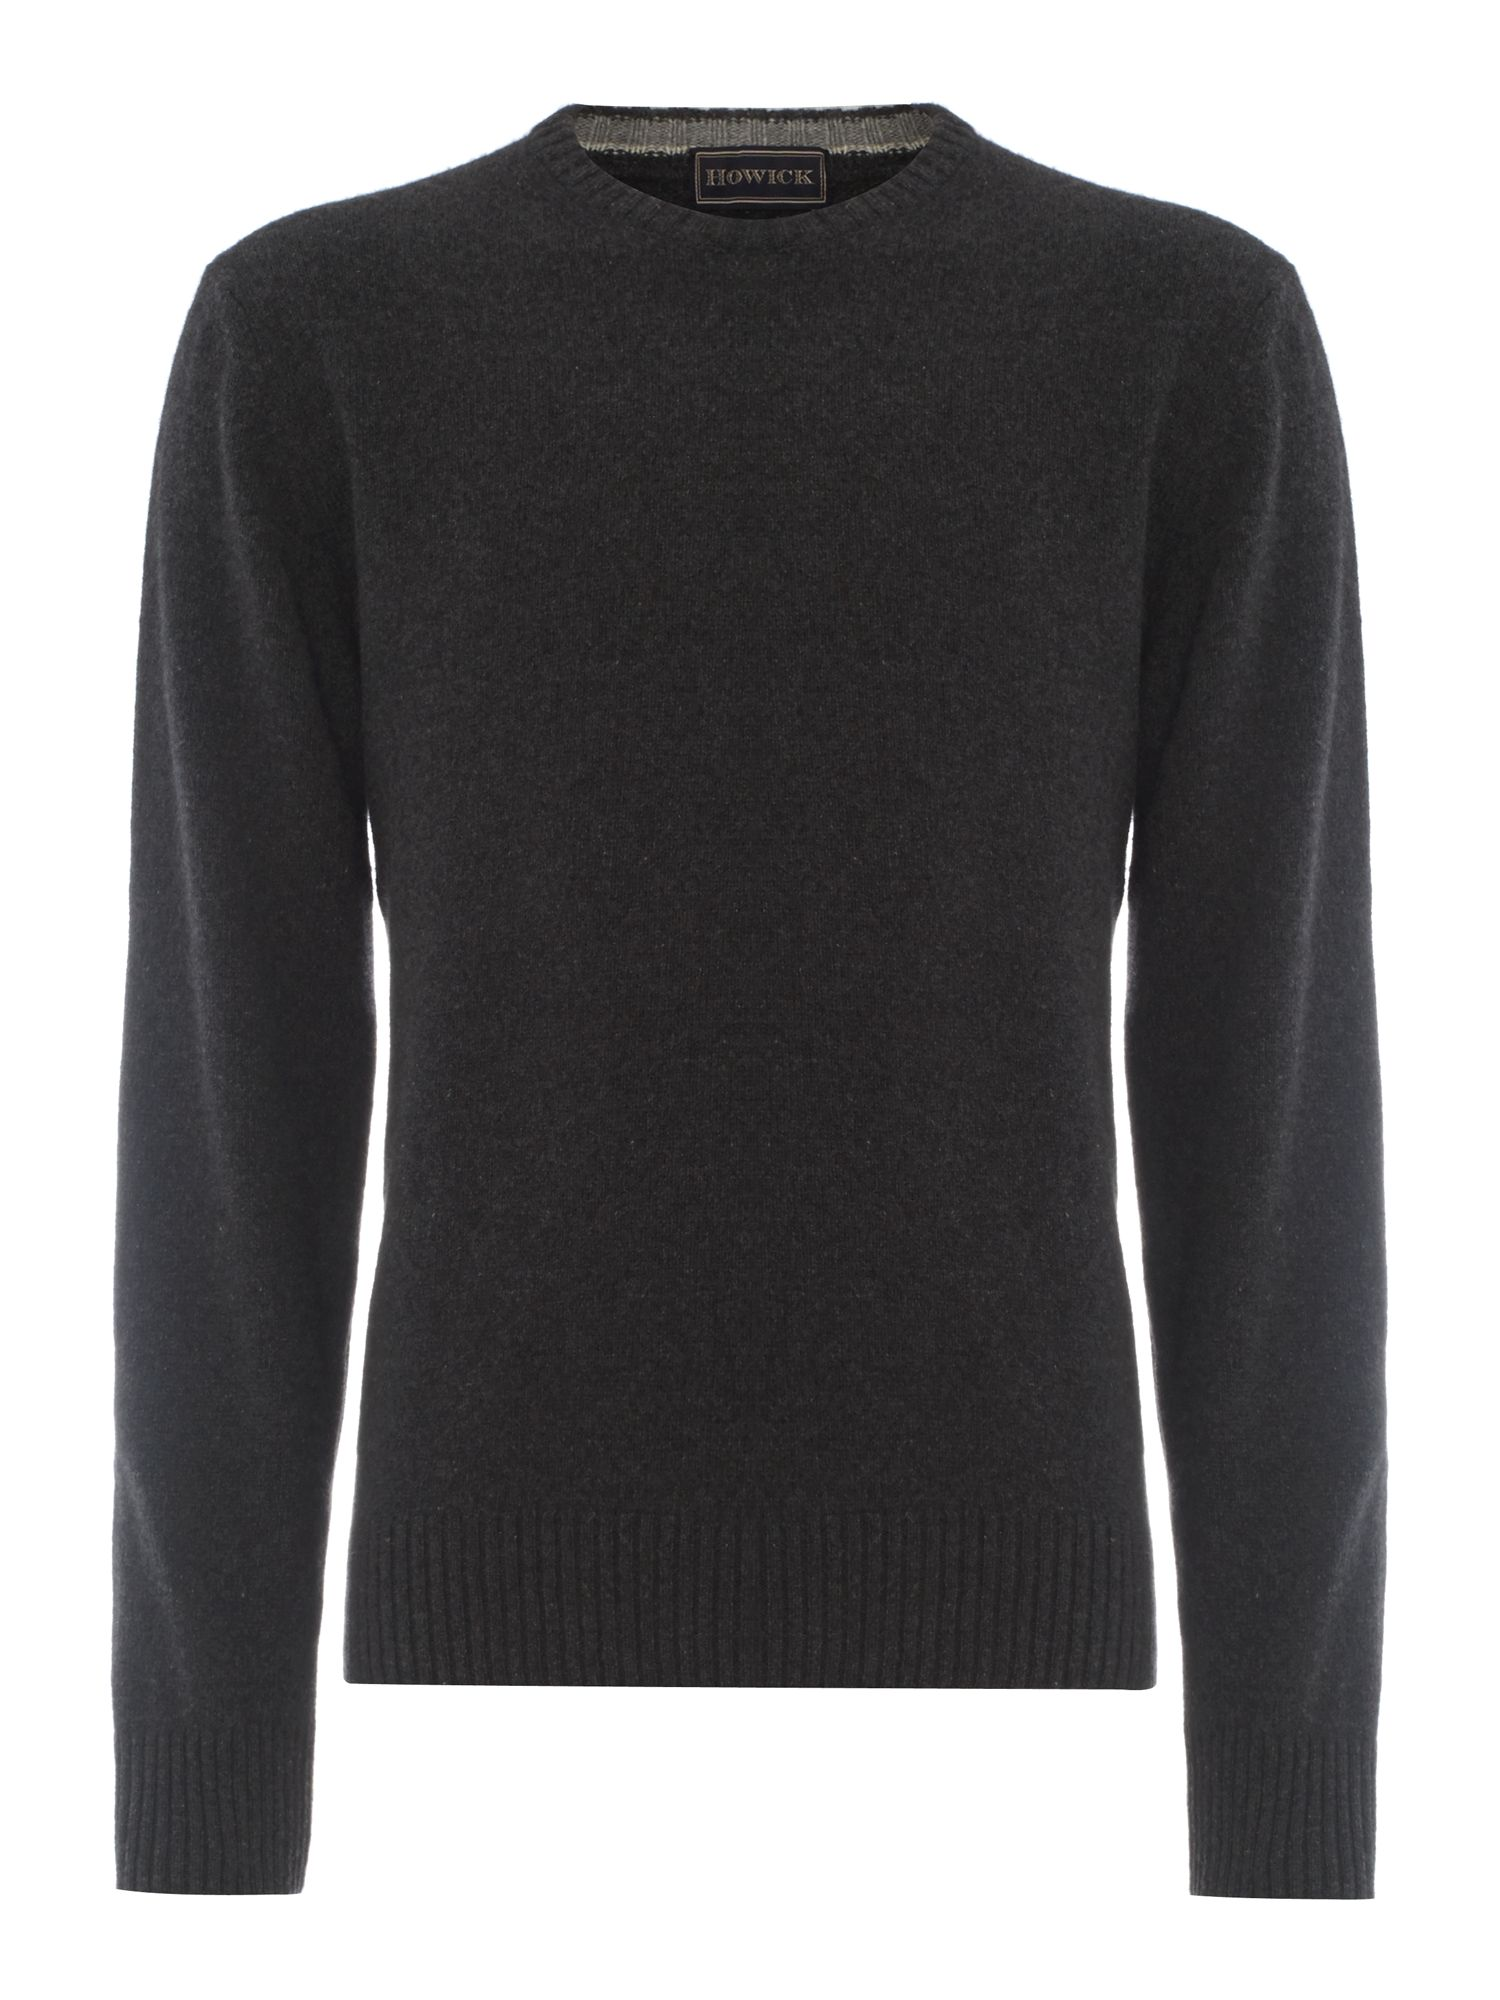 100% Cashmere crew neck jumper made in Italy